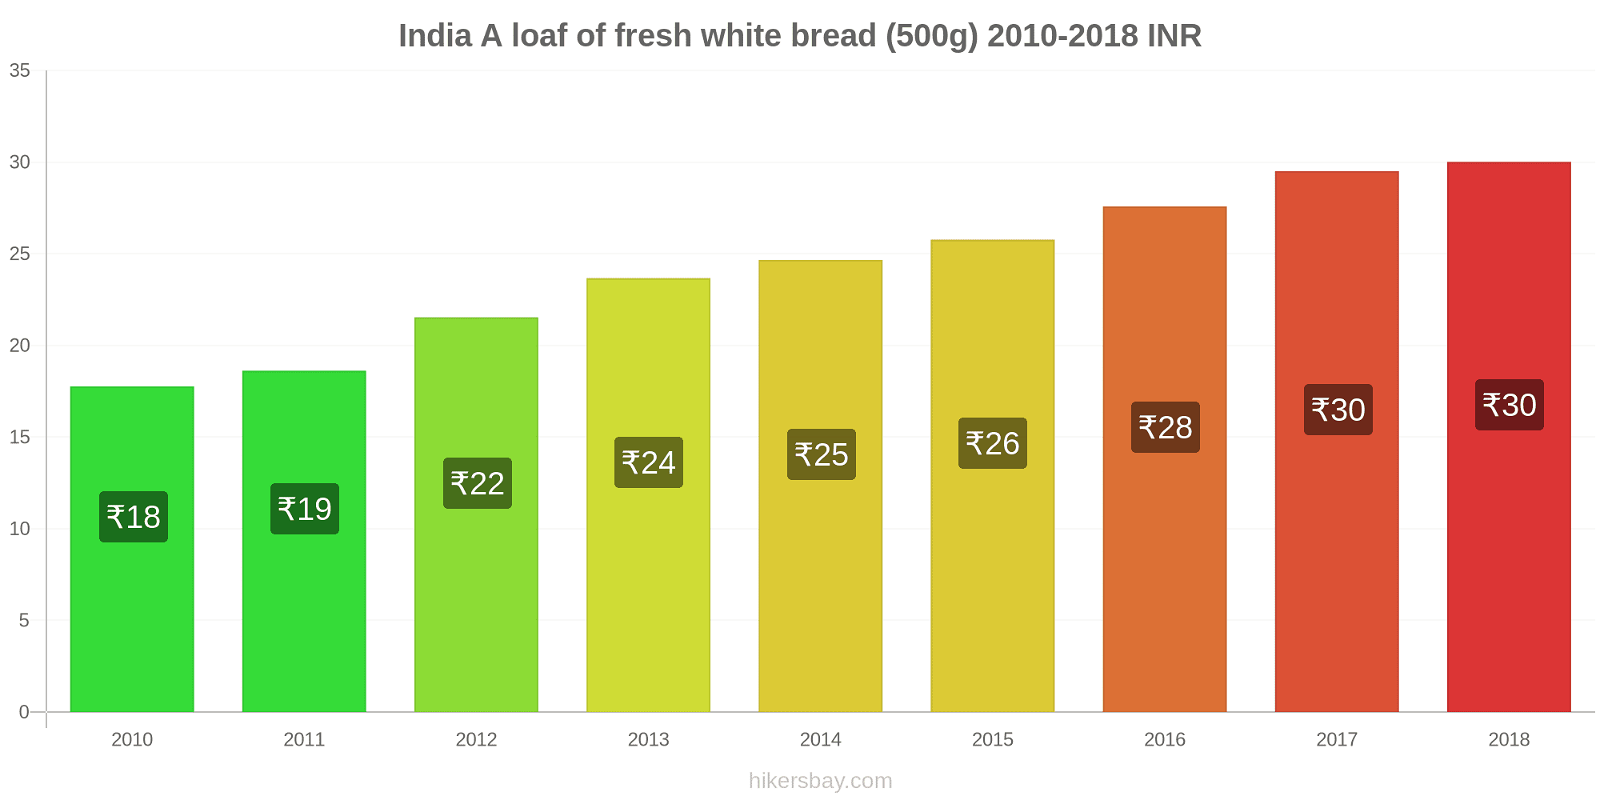 India price changes A loaf of fresh white bread (500g) hikersbay.com